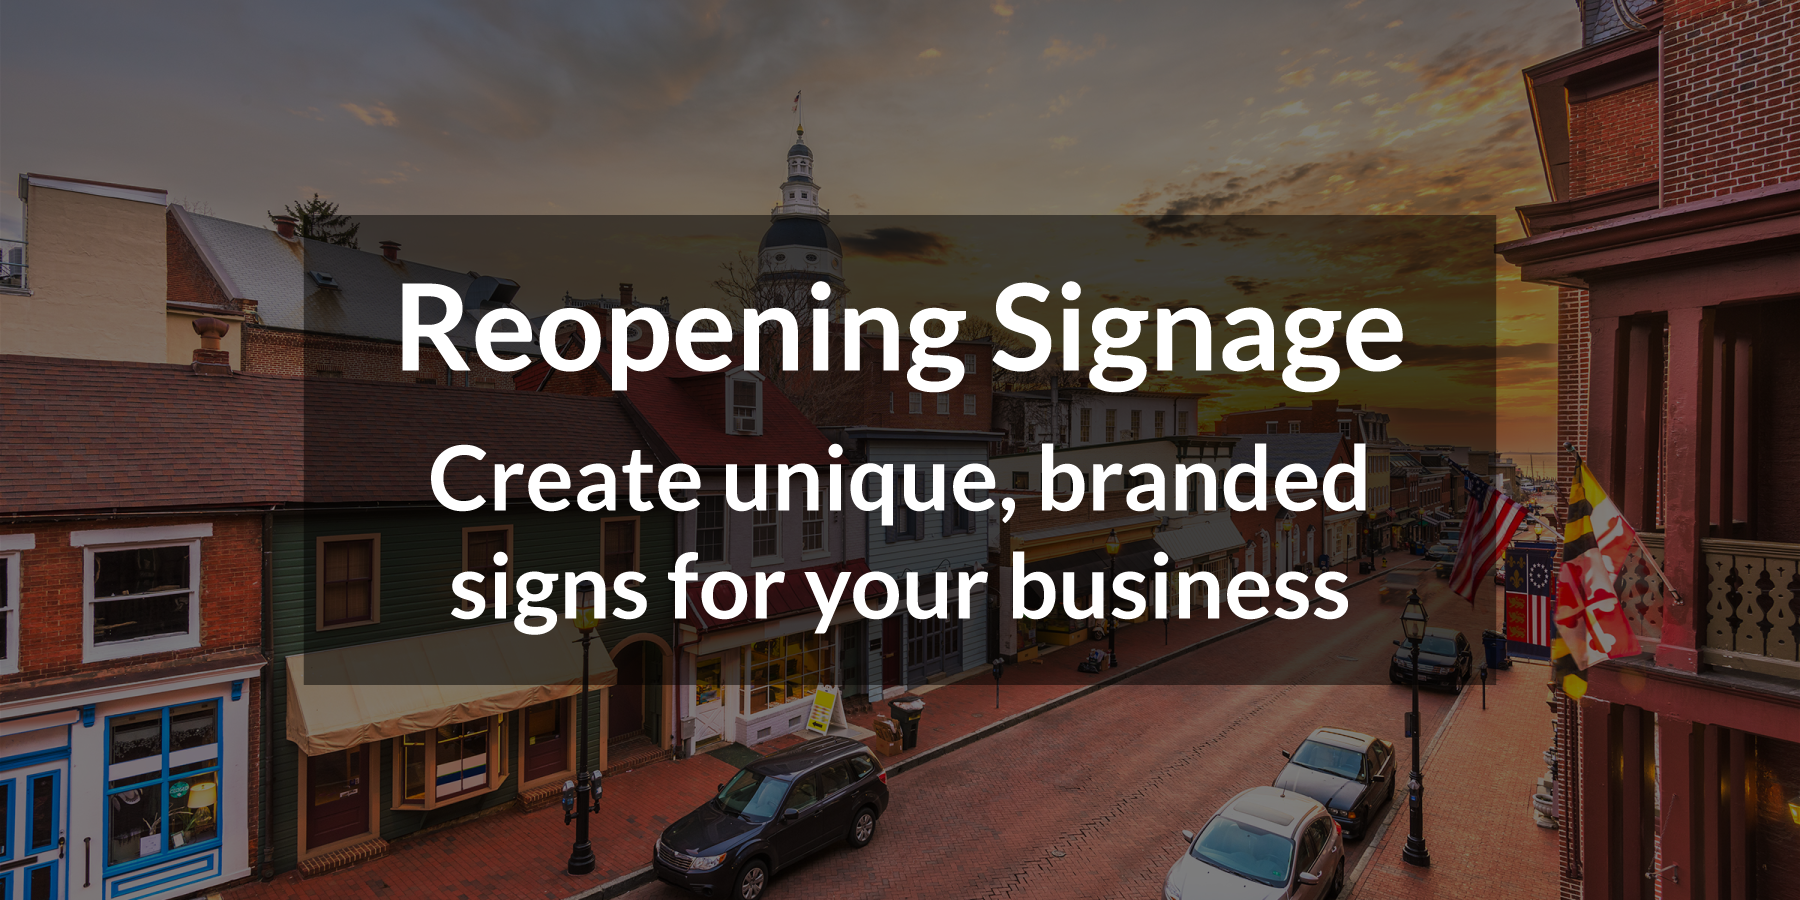 Reopening Signage: Create unique, branded signs for your business